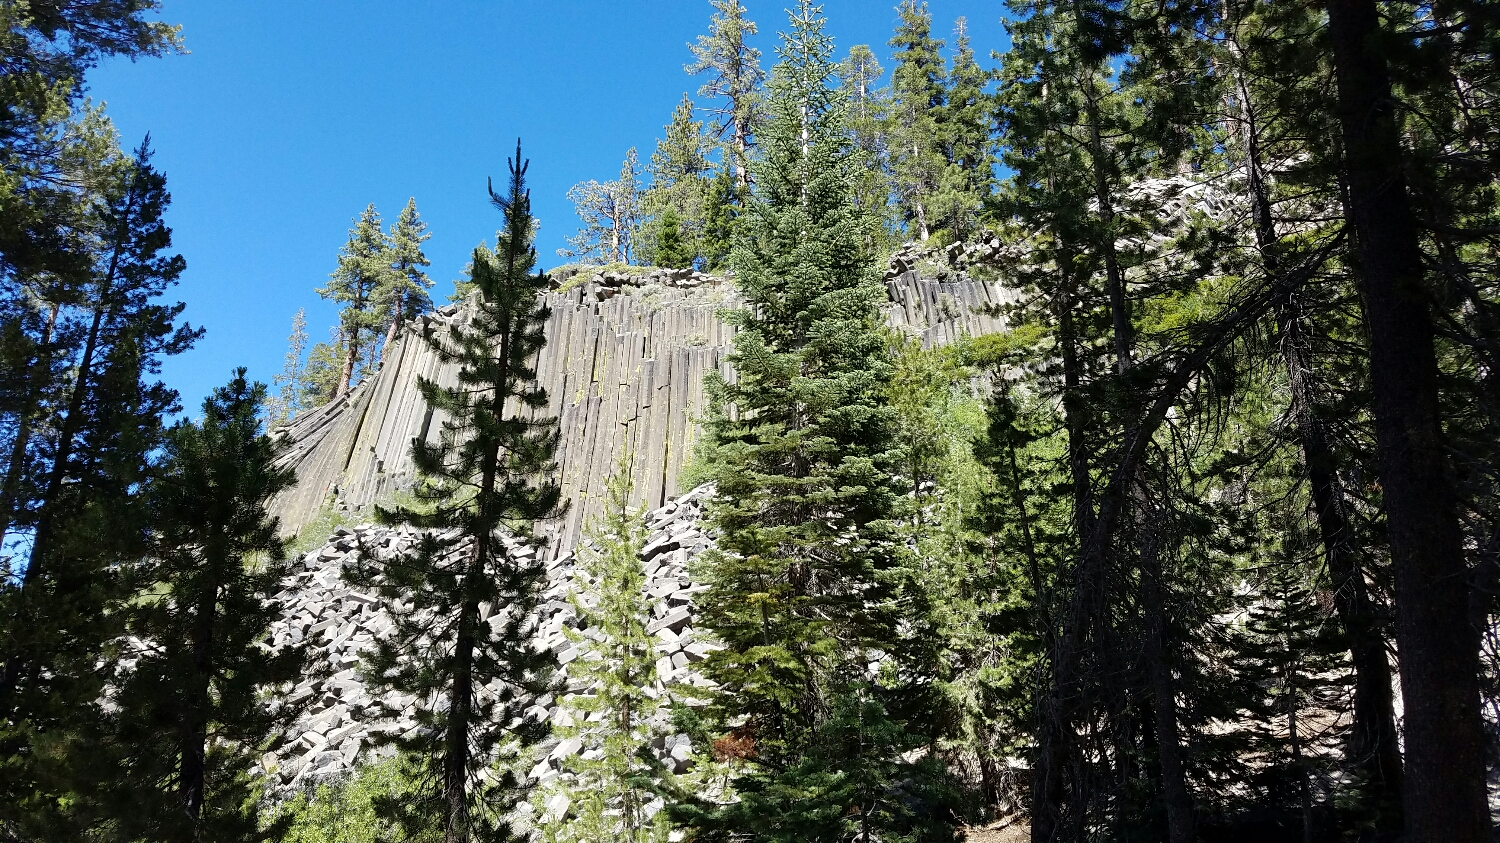 Our first day out from Red's - here's the Devils Postpile